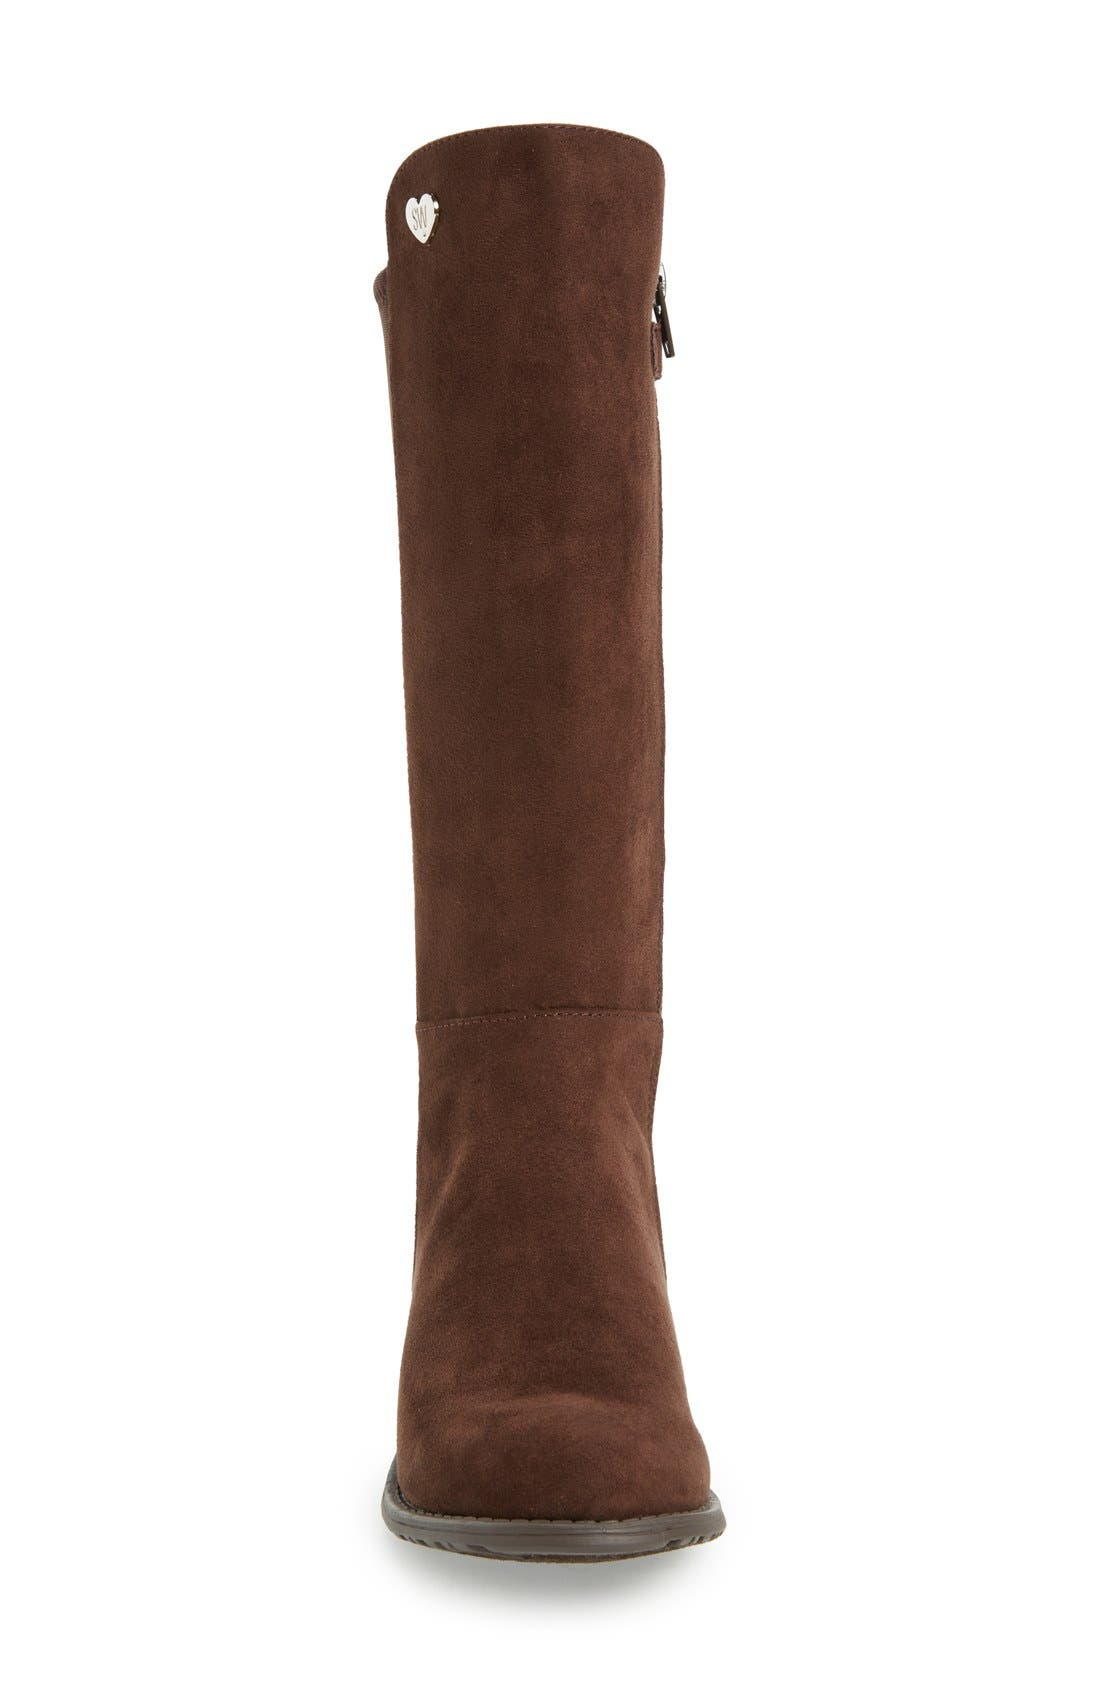 '50/50' Stretch Back Riding Boot,                             Alternate thumbnail 3, color,                             Brown Leather